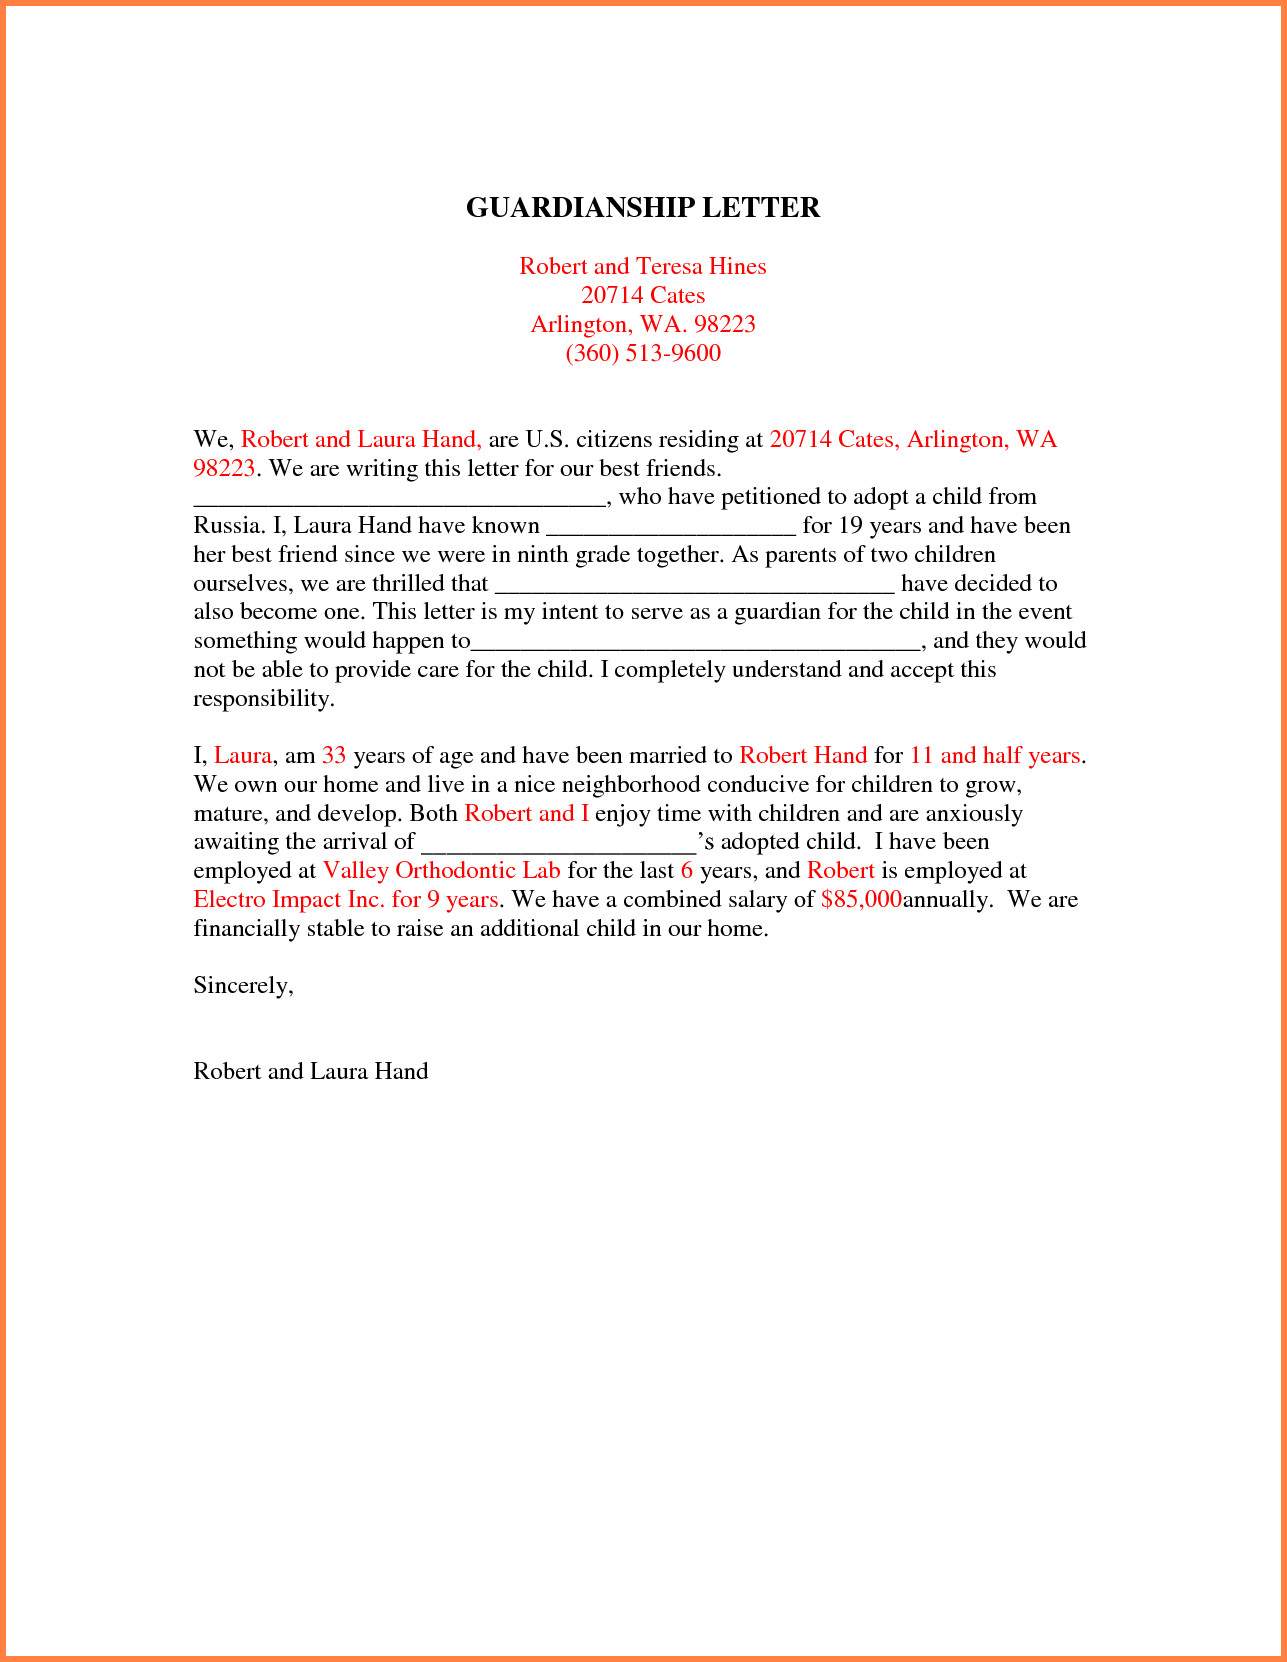 Free Guardianship Letter Template - Sample Guardianship Letter Inspirational Nice Temporary Guardianship